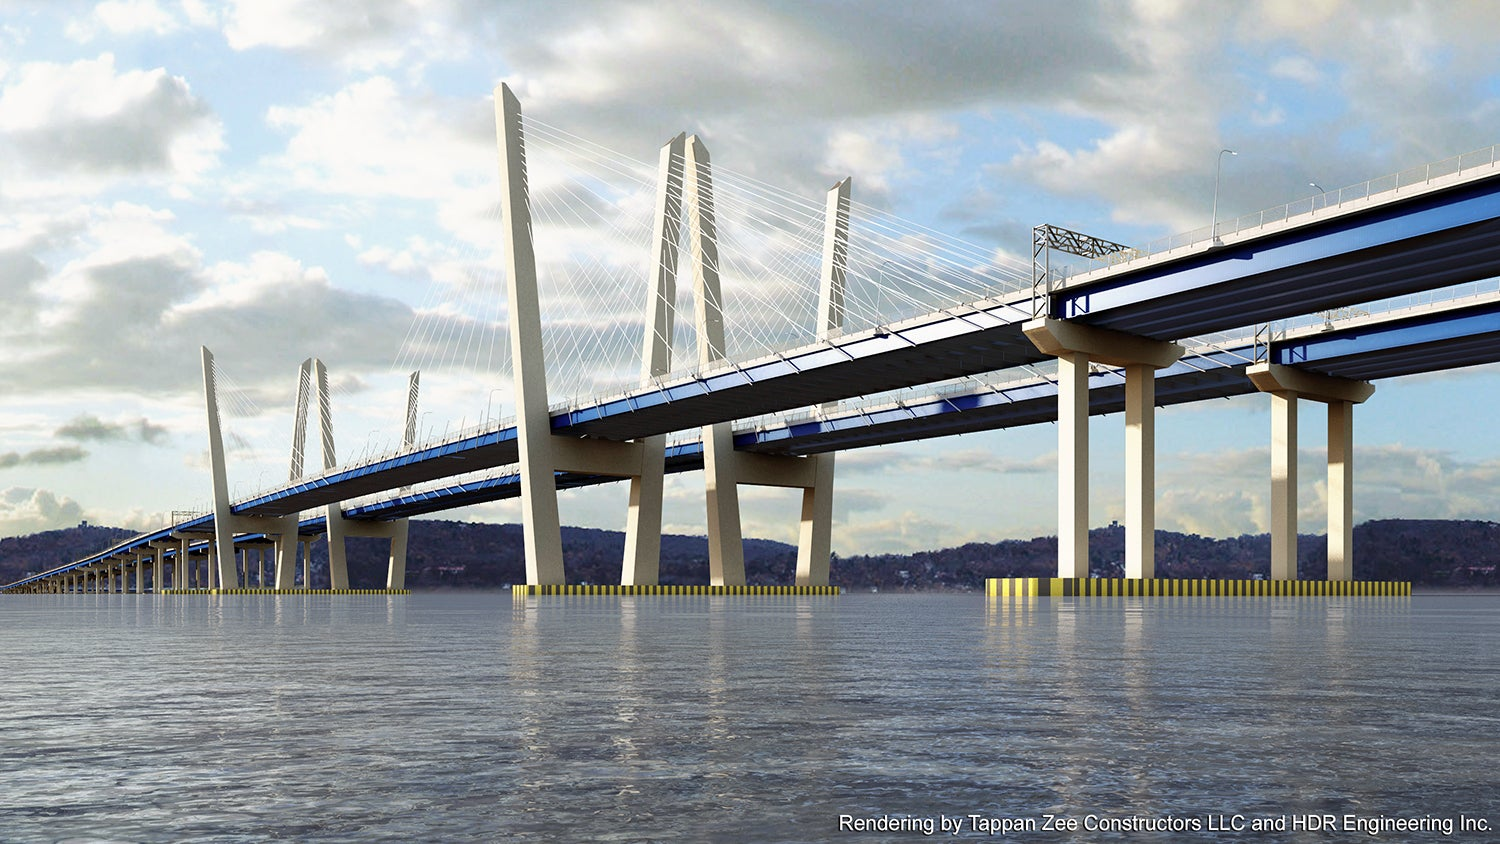 Tappan Zee Bridge Design Build